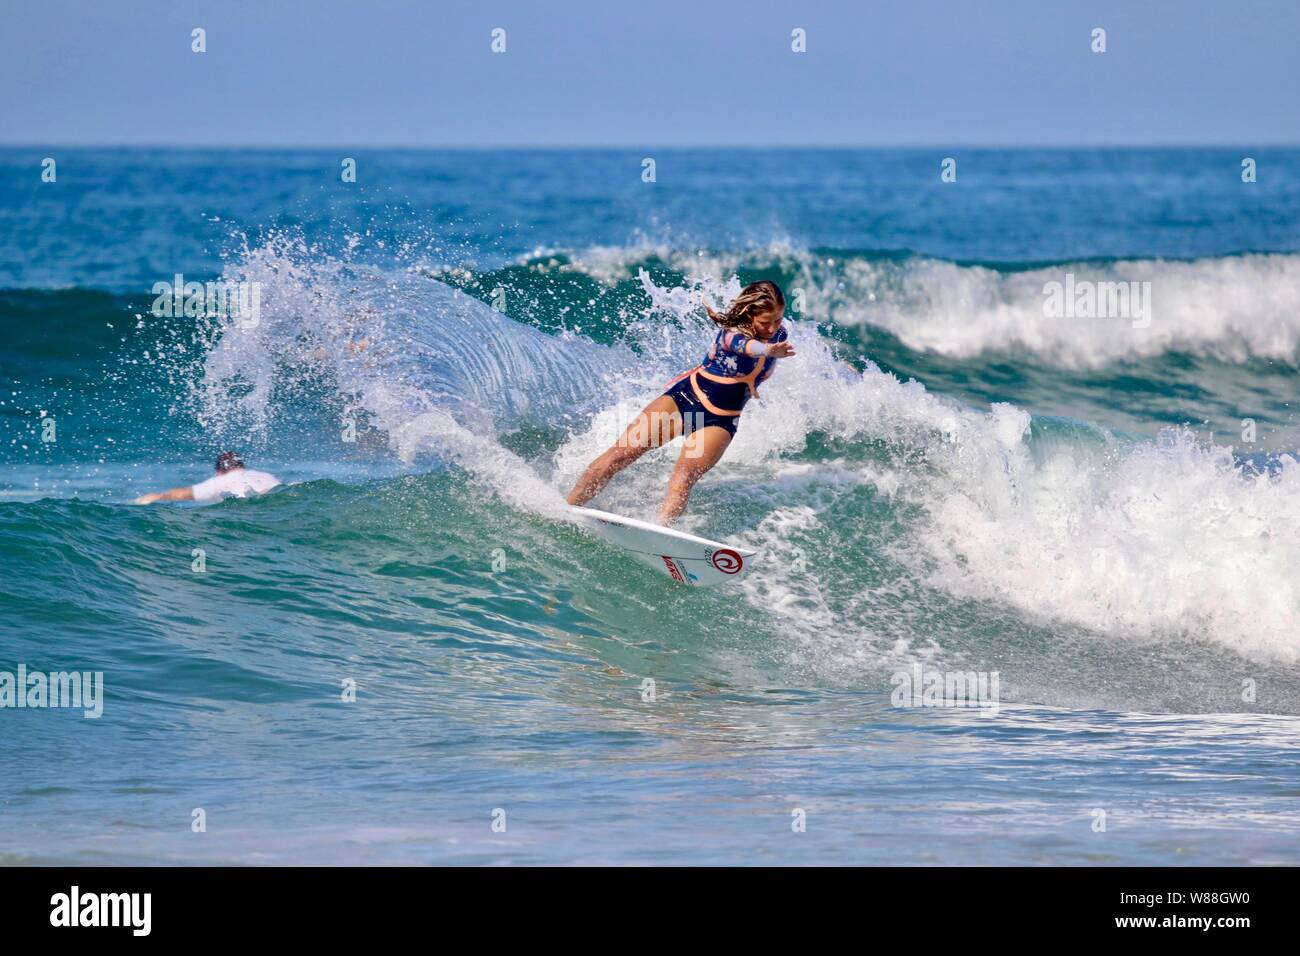 Professional French surfer Pauline Ado surfing off the coast of Huntington Beach, California Stock Photo